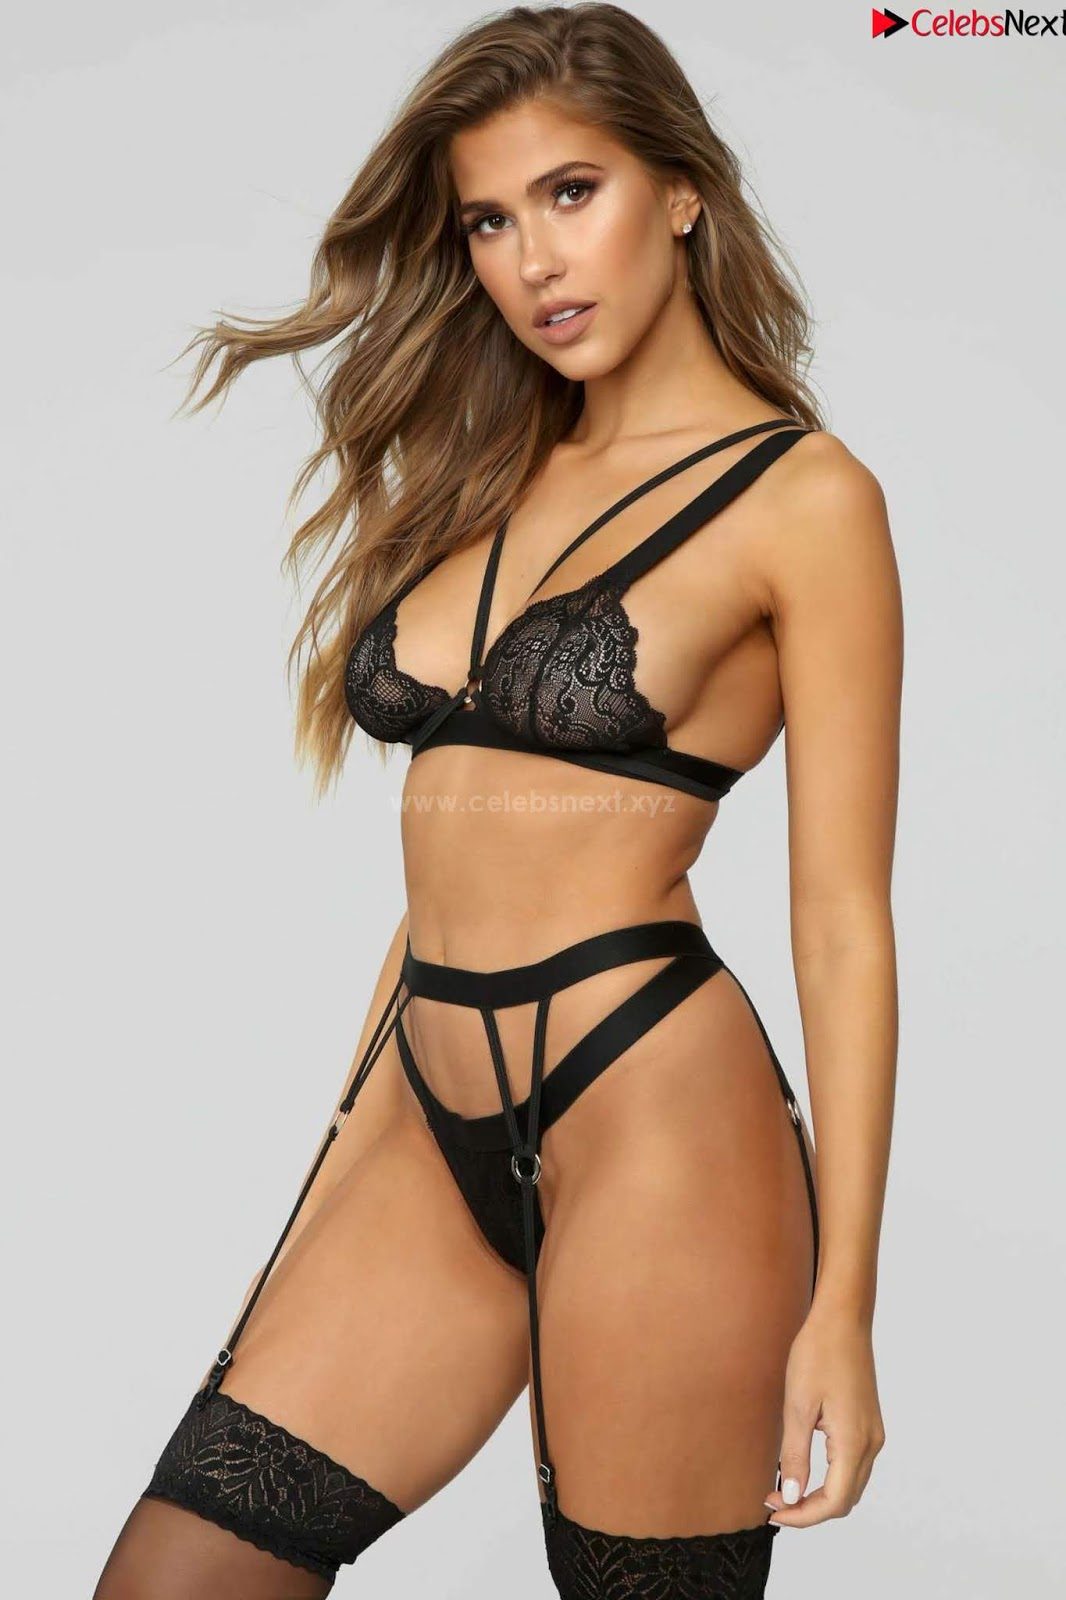 Kara Del Toro Exposing Her Beautiful body in Fashion Nova Lingerie Collection 2019 18 ~ CelebSneXt.xyz Exclusive Pics